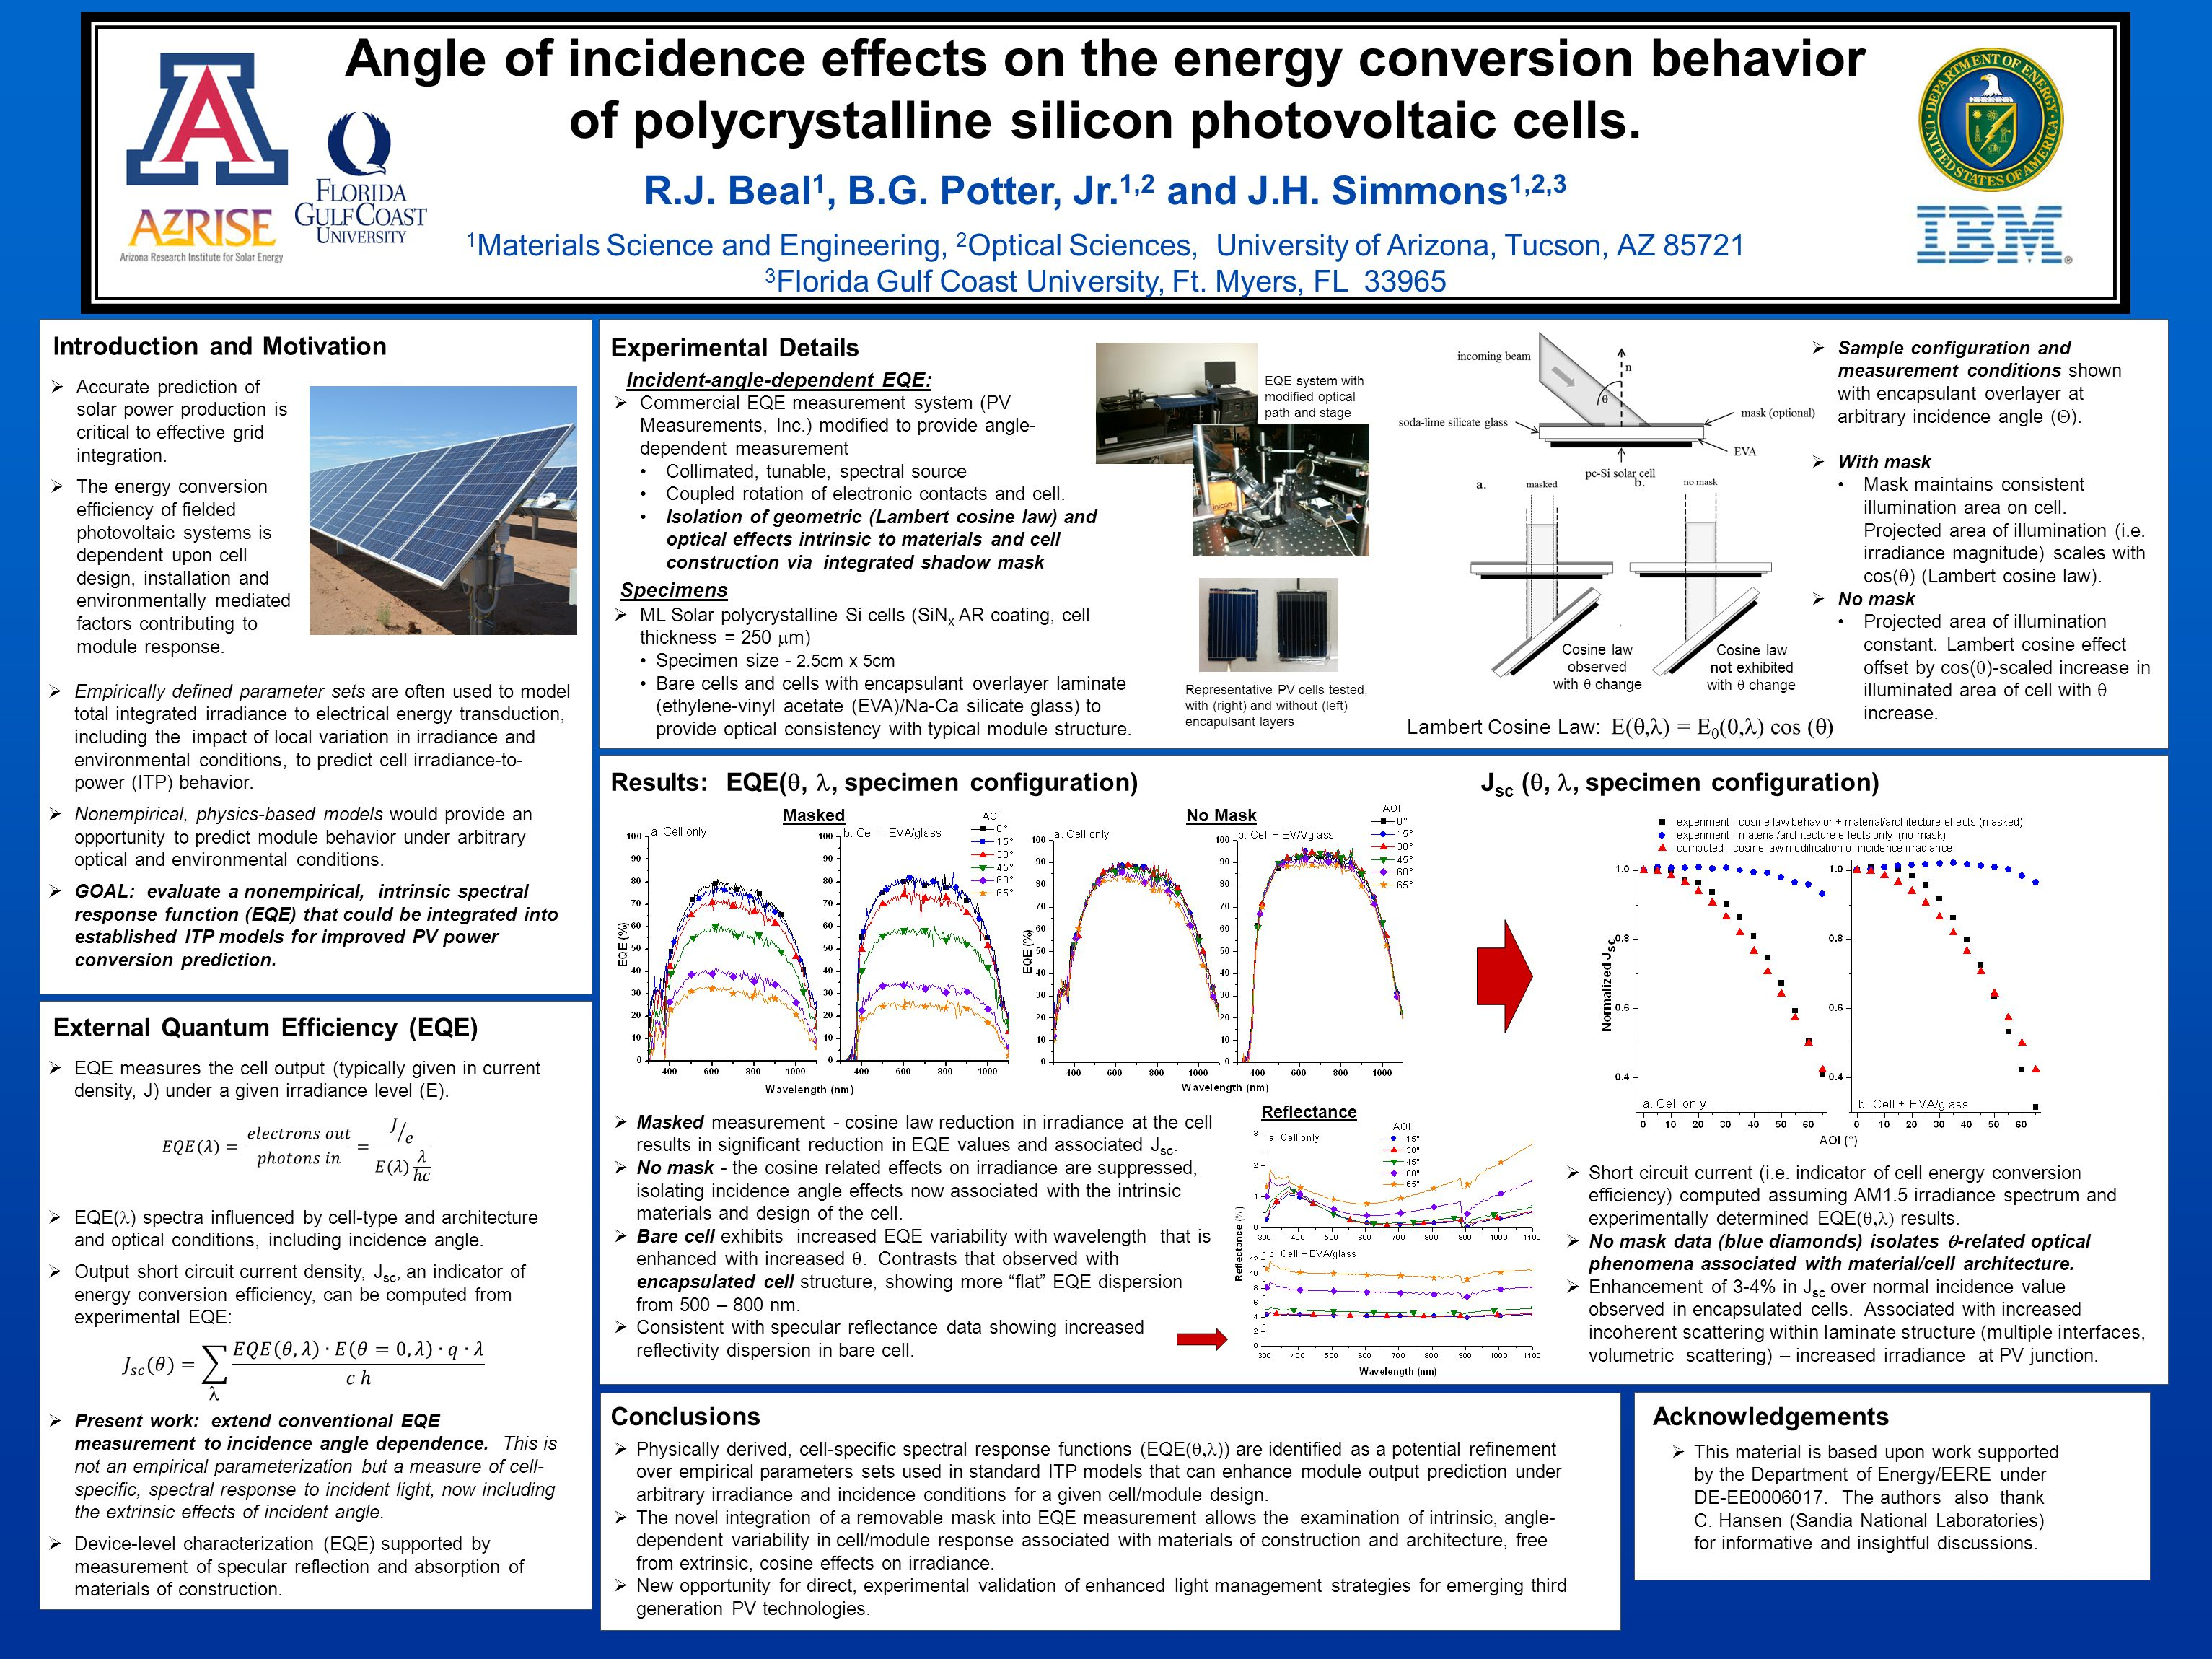 Angle of incidence effects on the energy conversion behavior of polycrystalline silicon photovoltaic cells.